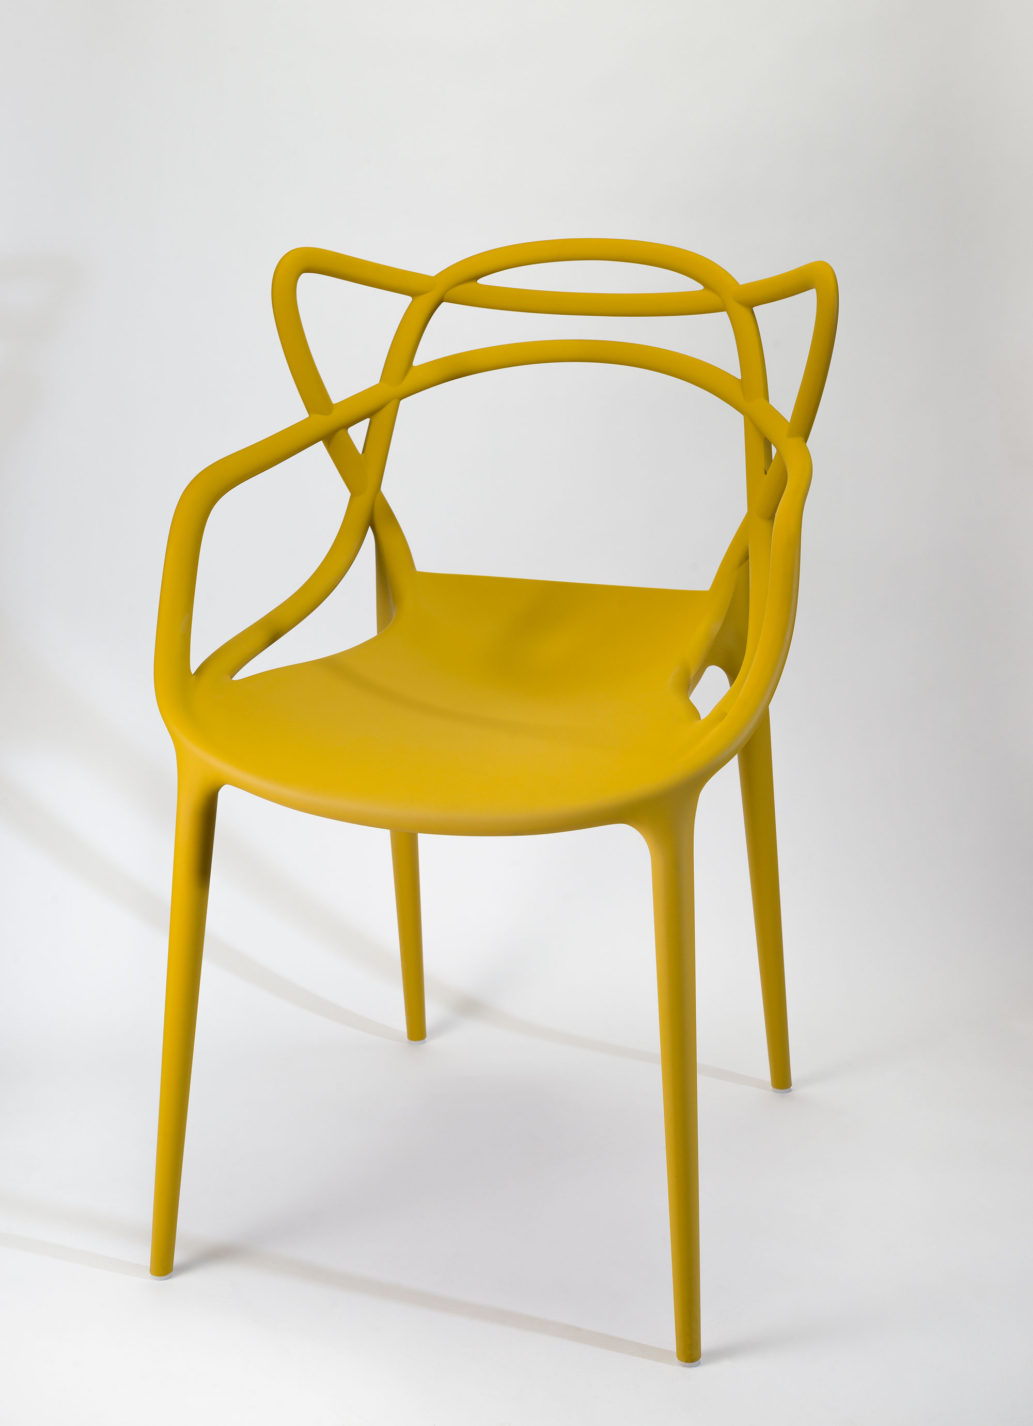 Plastic armchair in mustard yellow, with slender legs, solid seat, and open-frame back and arms.